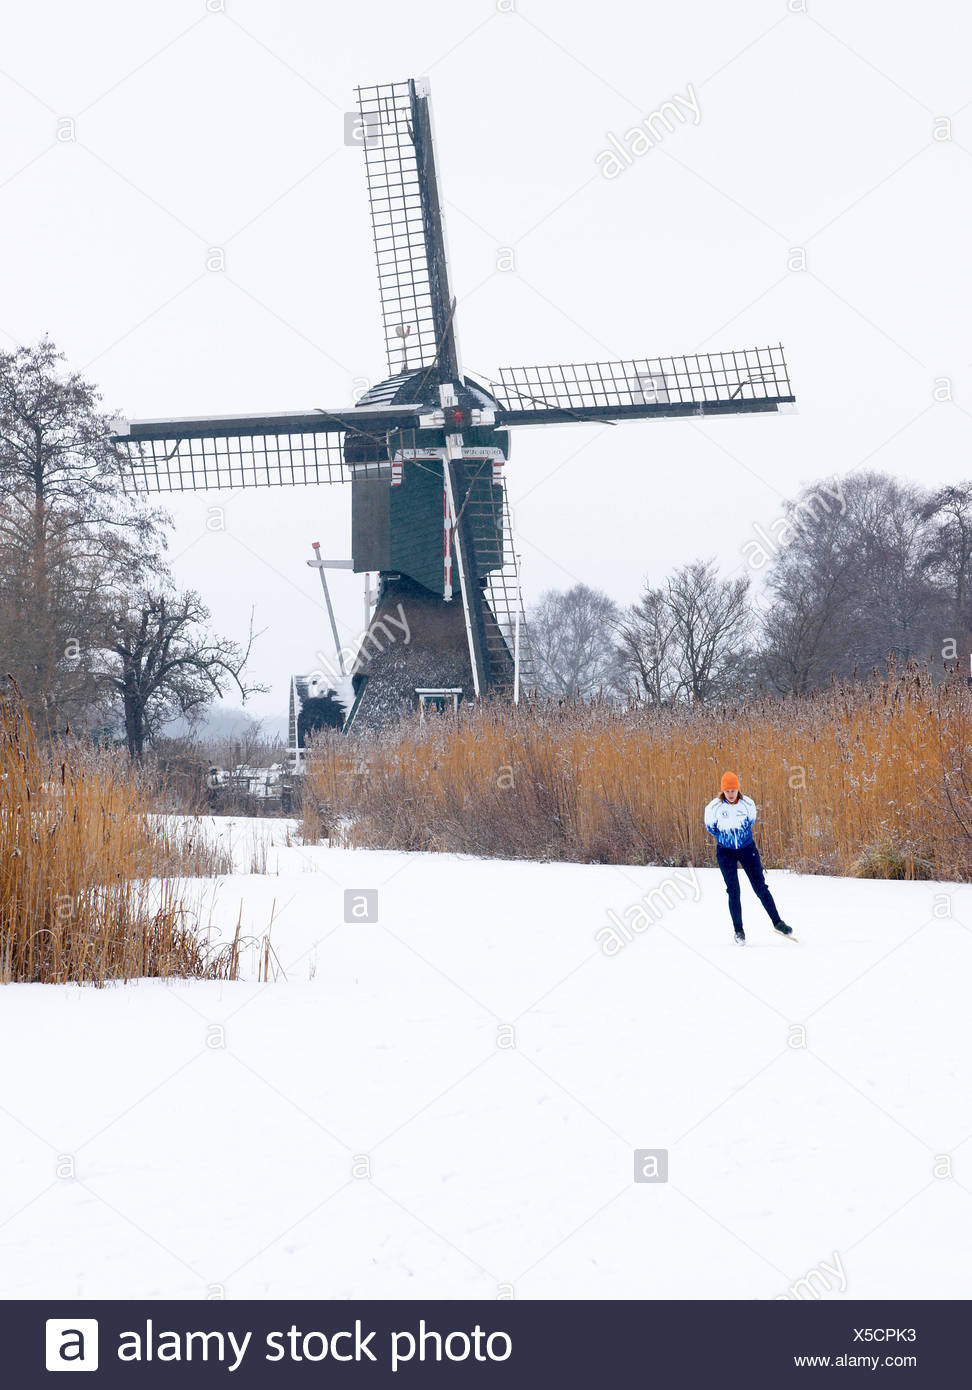 Ice skater on frozen canal and Dutch windmill. - Stock Image